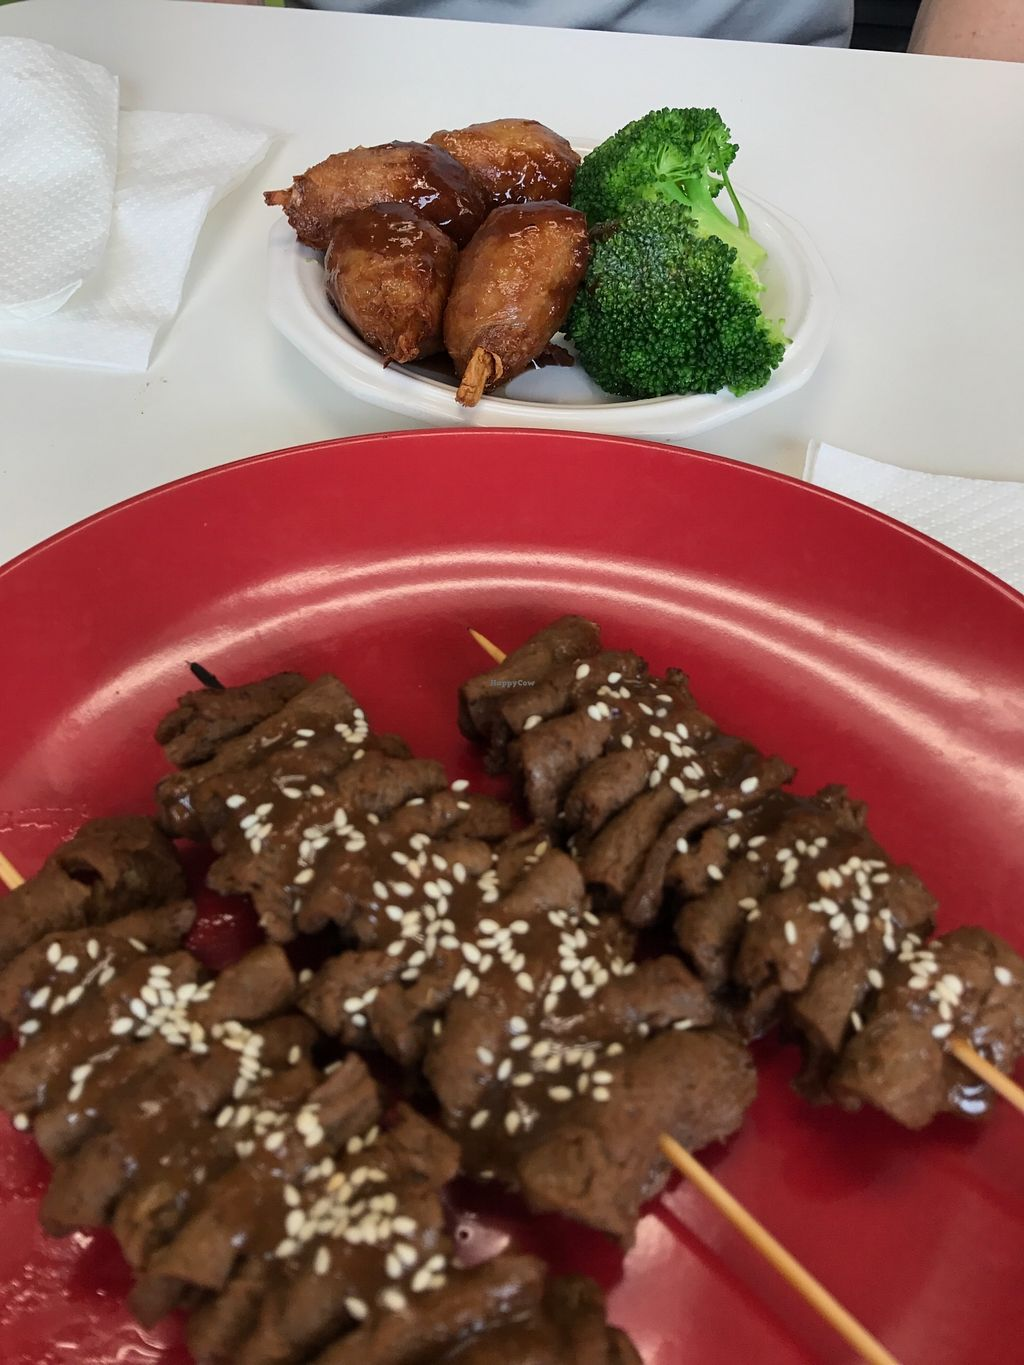 """Photo of Vegan to Goloka  by <a href=""""/members/profile/melissapedroso"""">melissapedroso</a> <br/>Skewers and wings <br/> October 31, 2017  - <a href='/contact/abuse/image/35589/320368'>Report</a>"""